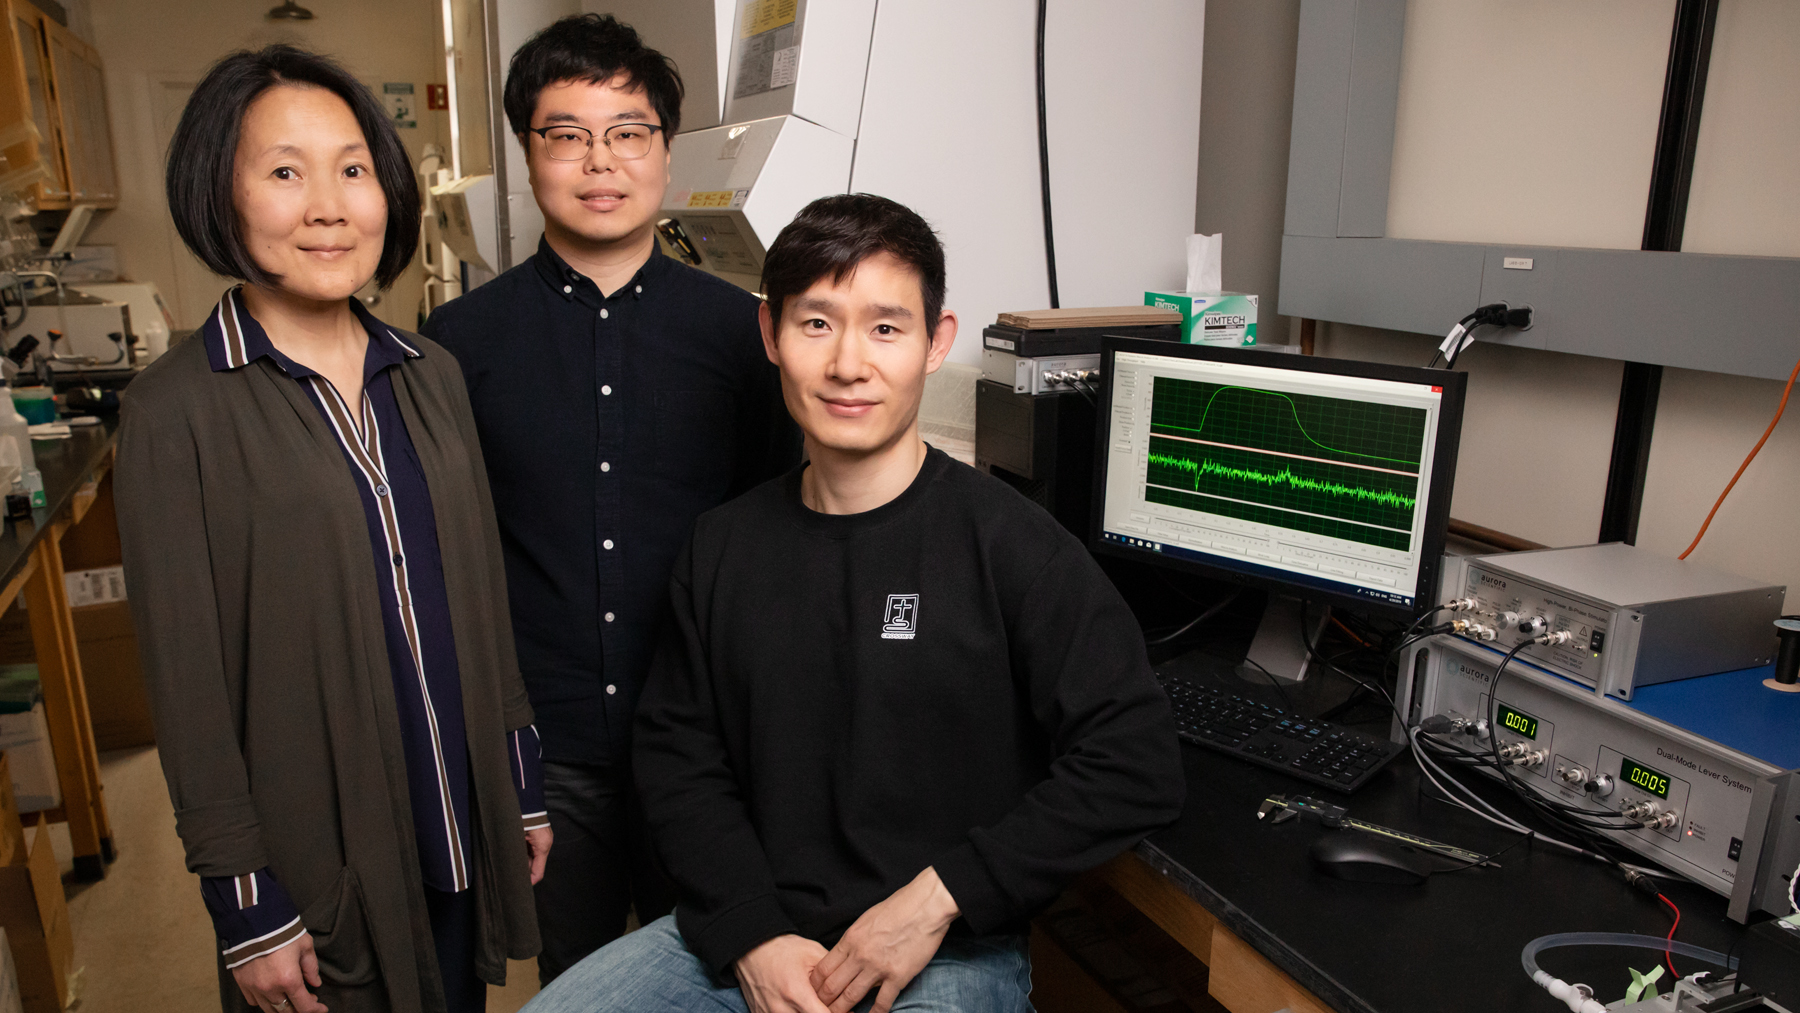 professor Jie Chen and graduate students Kook Son and Jae-Sung You discovered a new role for LRS in muscle repair. Photo by L. Brian Stauffer